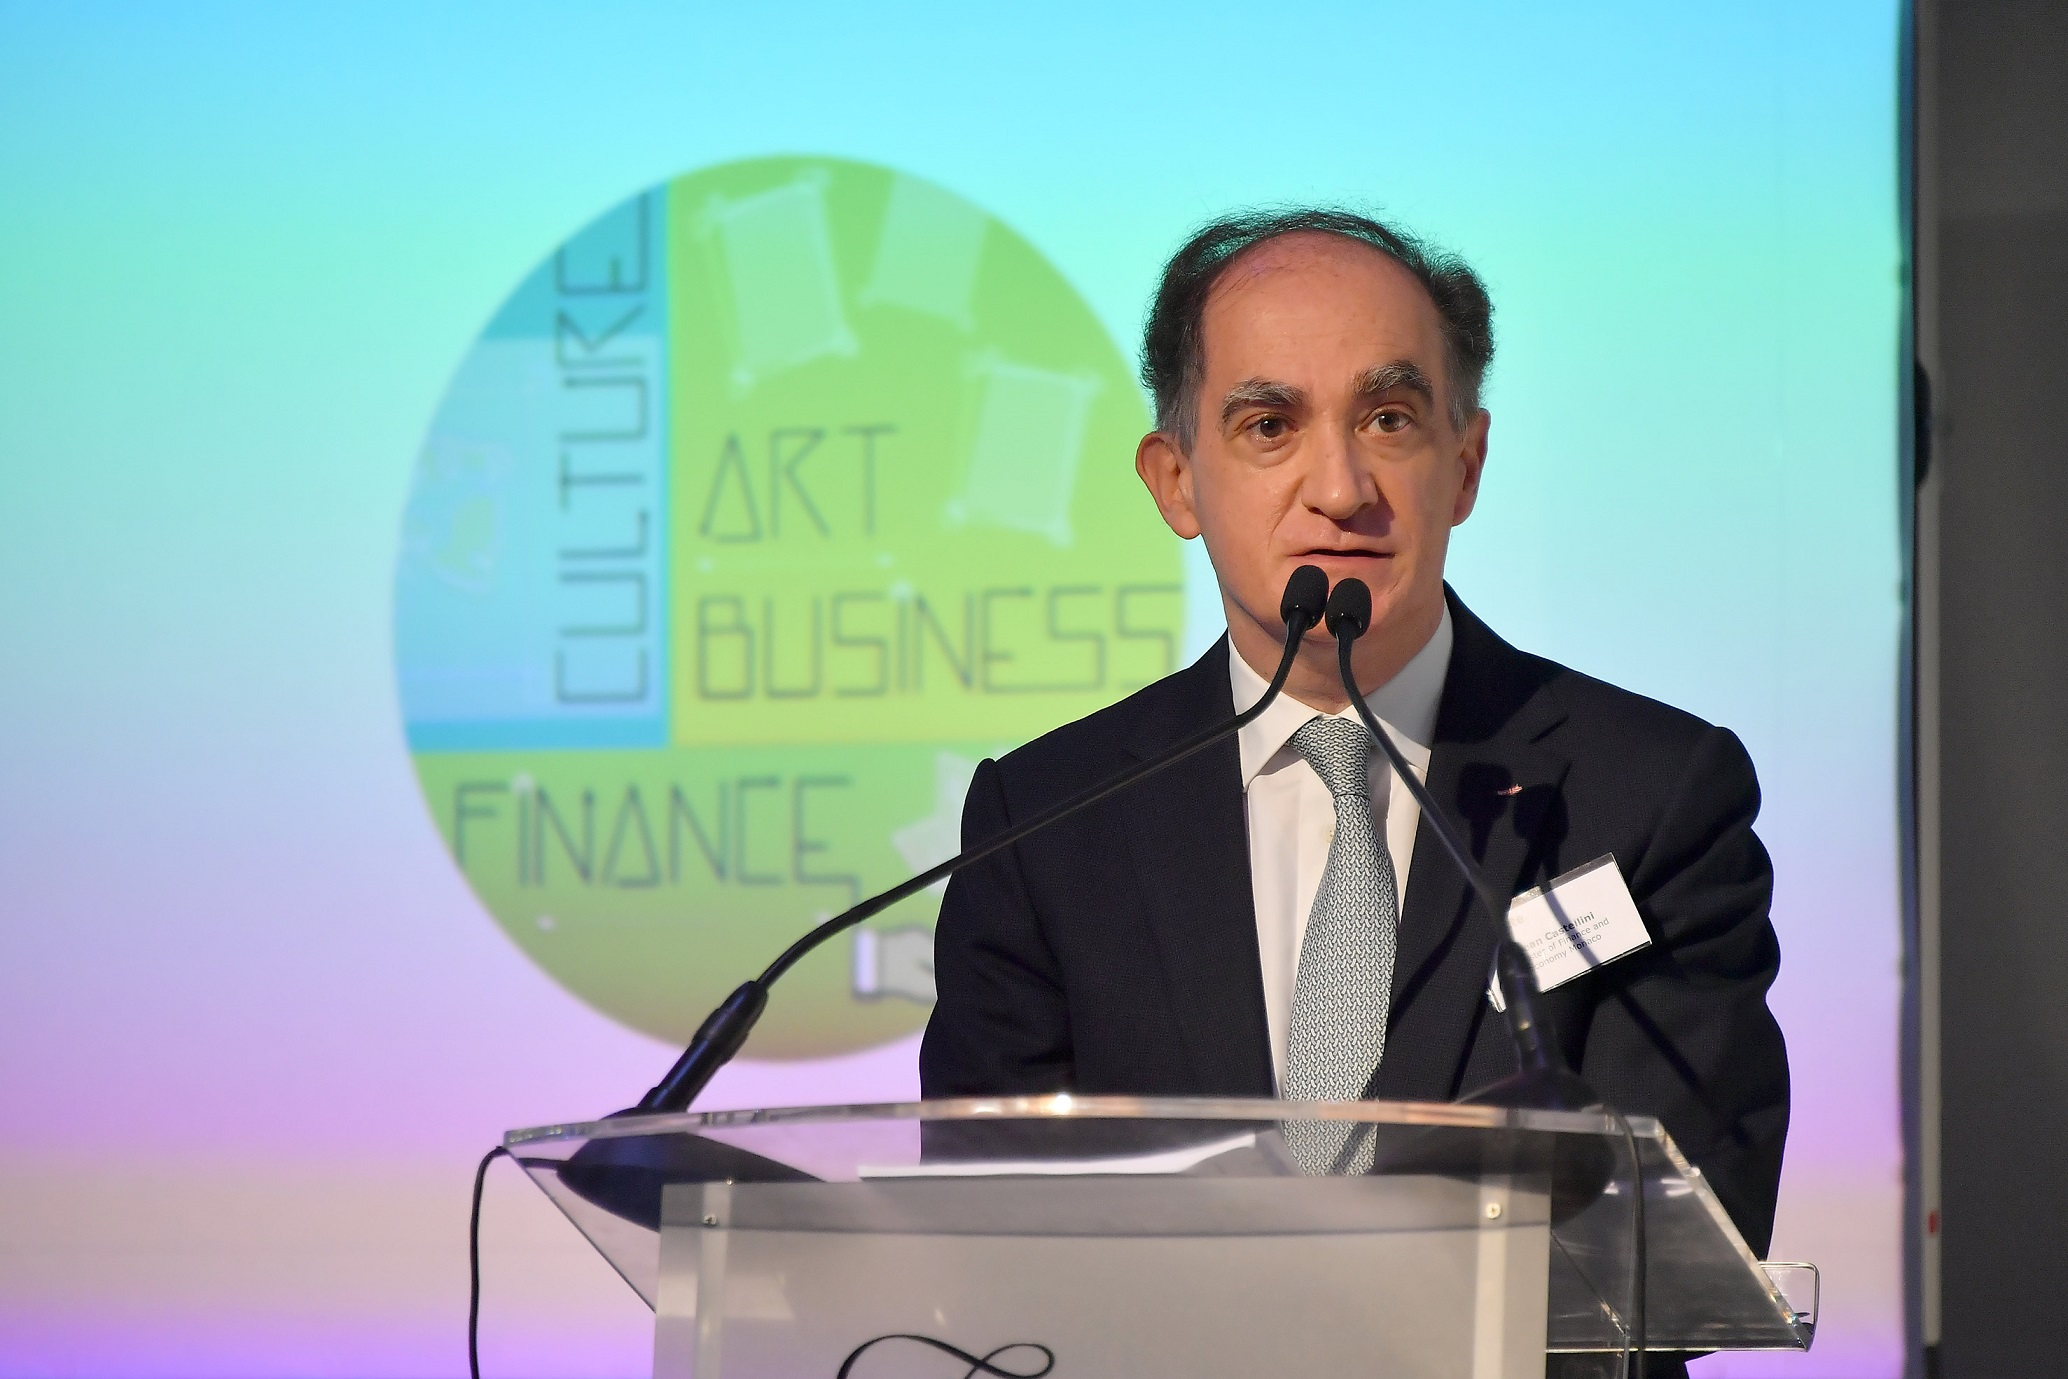 Art Finance Conference 2019 Jean Castellini